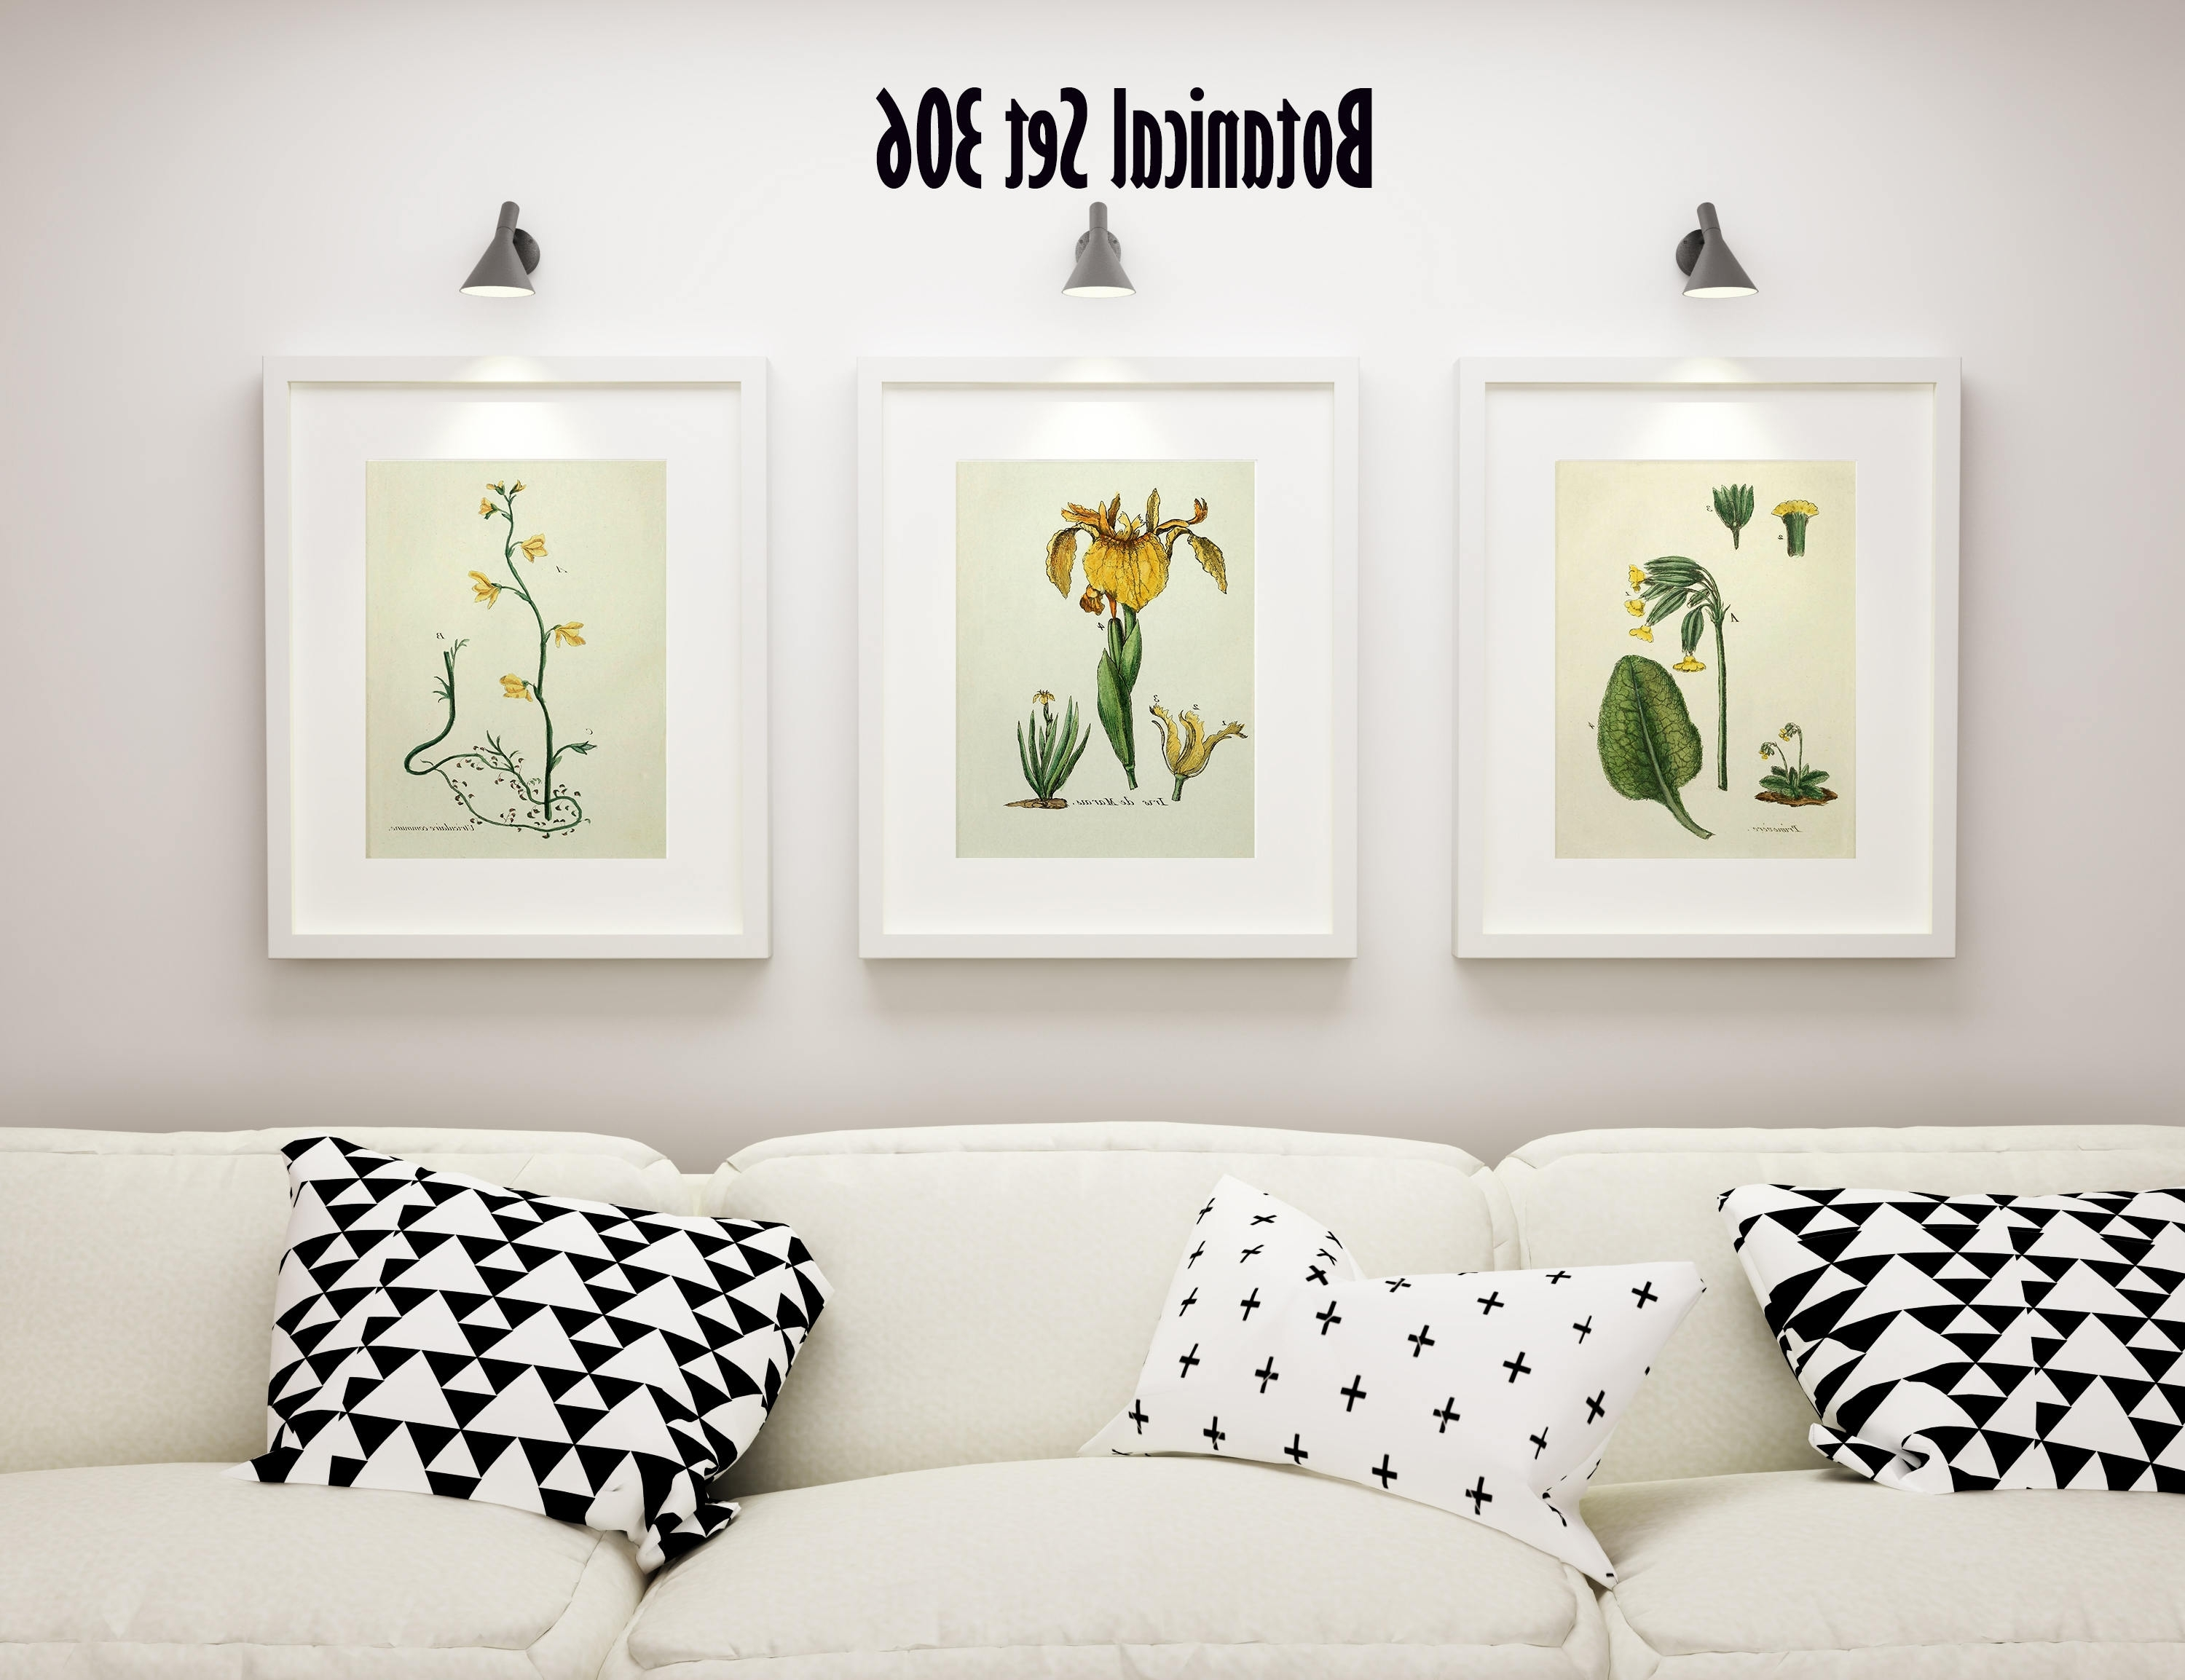 3 Vintage Floral Prints – Matted And Framed – Yellow Floral Prints Inside Popular French Country Wall Art Prints (View 3 of 15)